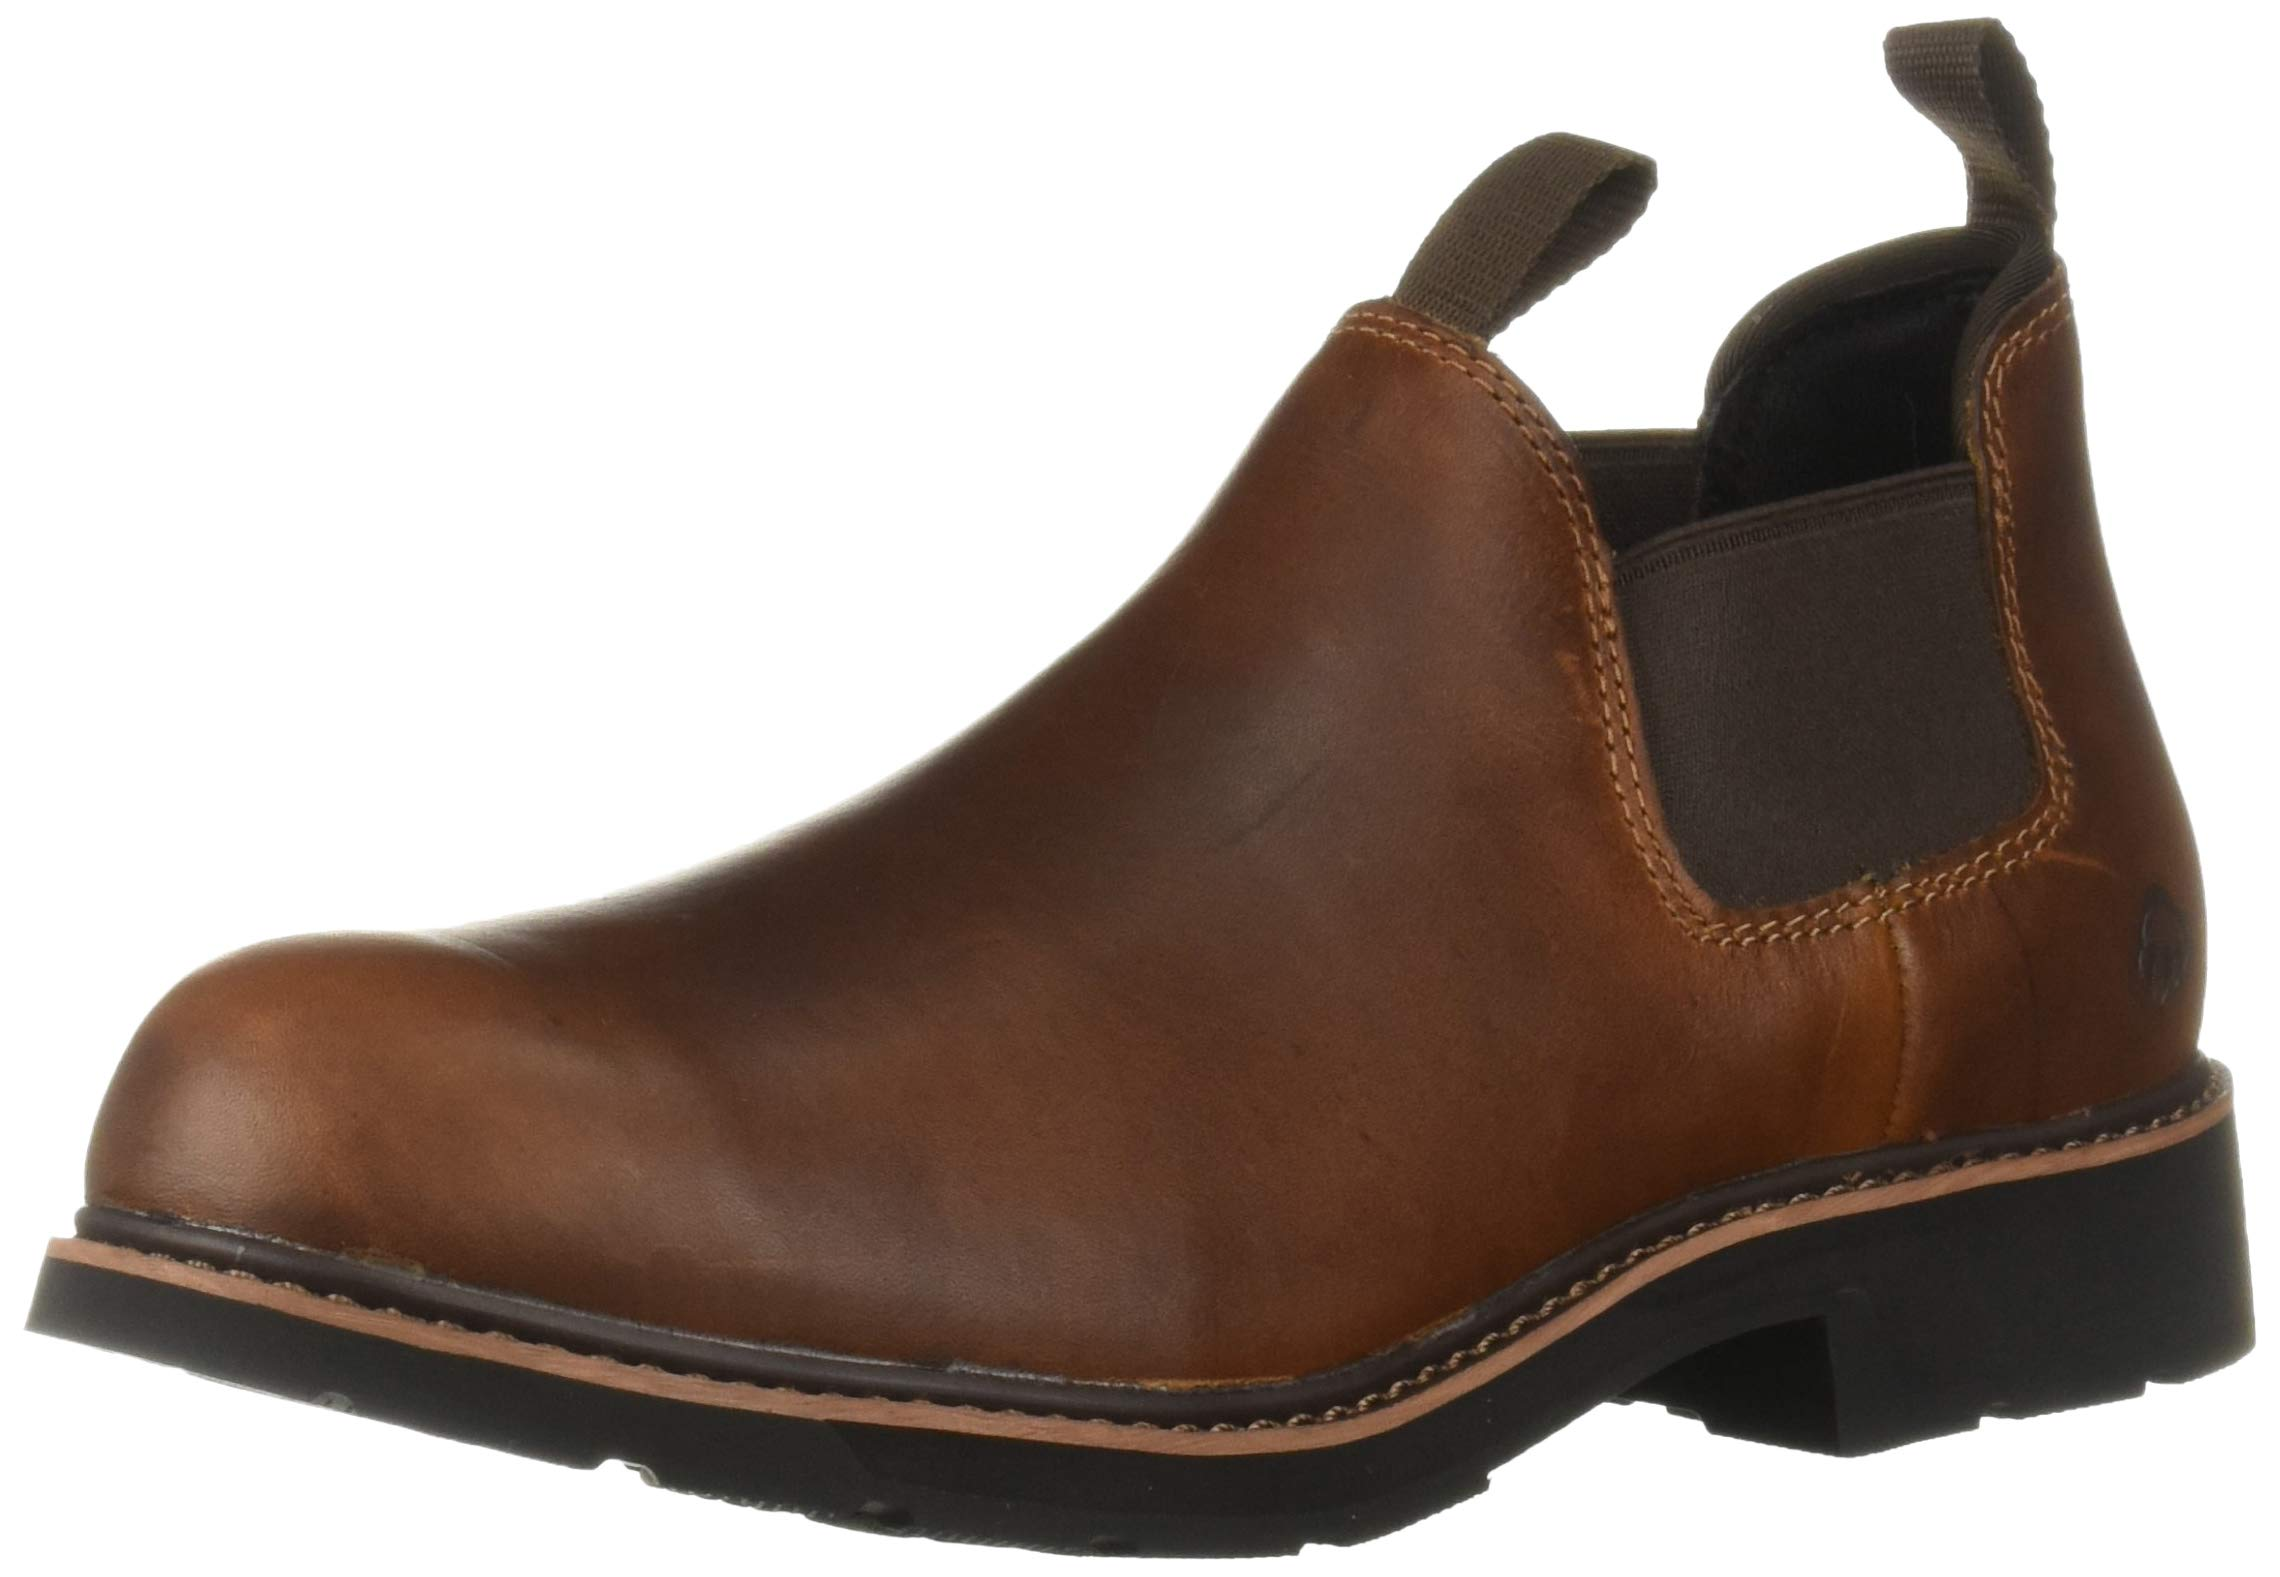 Wolverine Men's Ranchero Romeo Industrial Shoe,Peanut,7 Extra Wide US by Wolverine